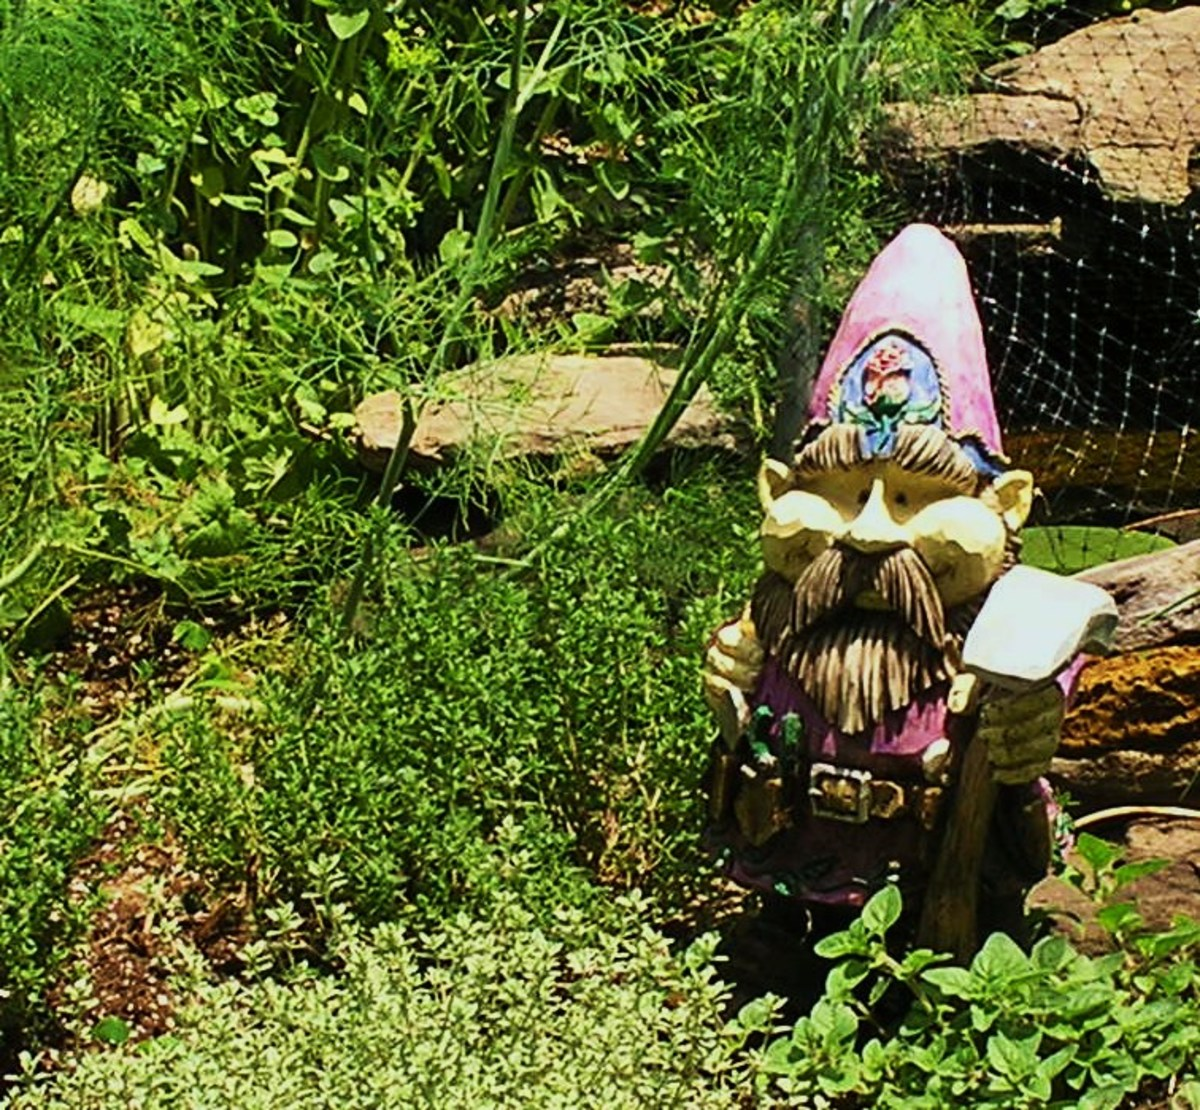 Gnome guarding the herbs.